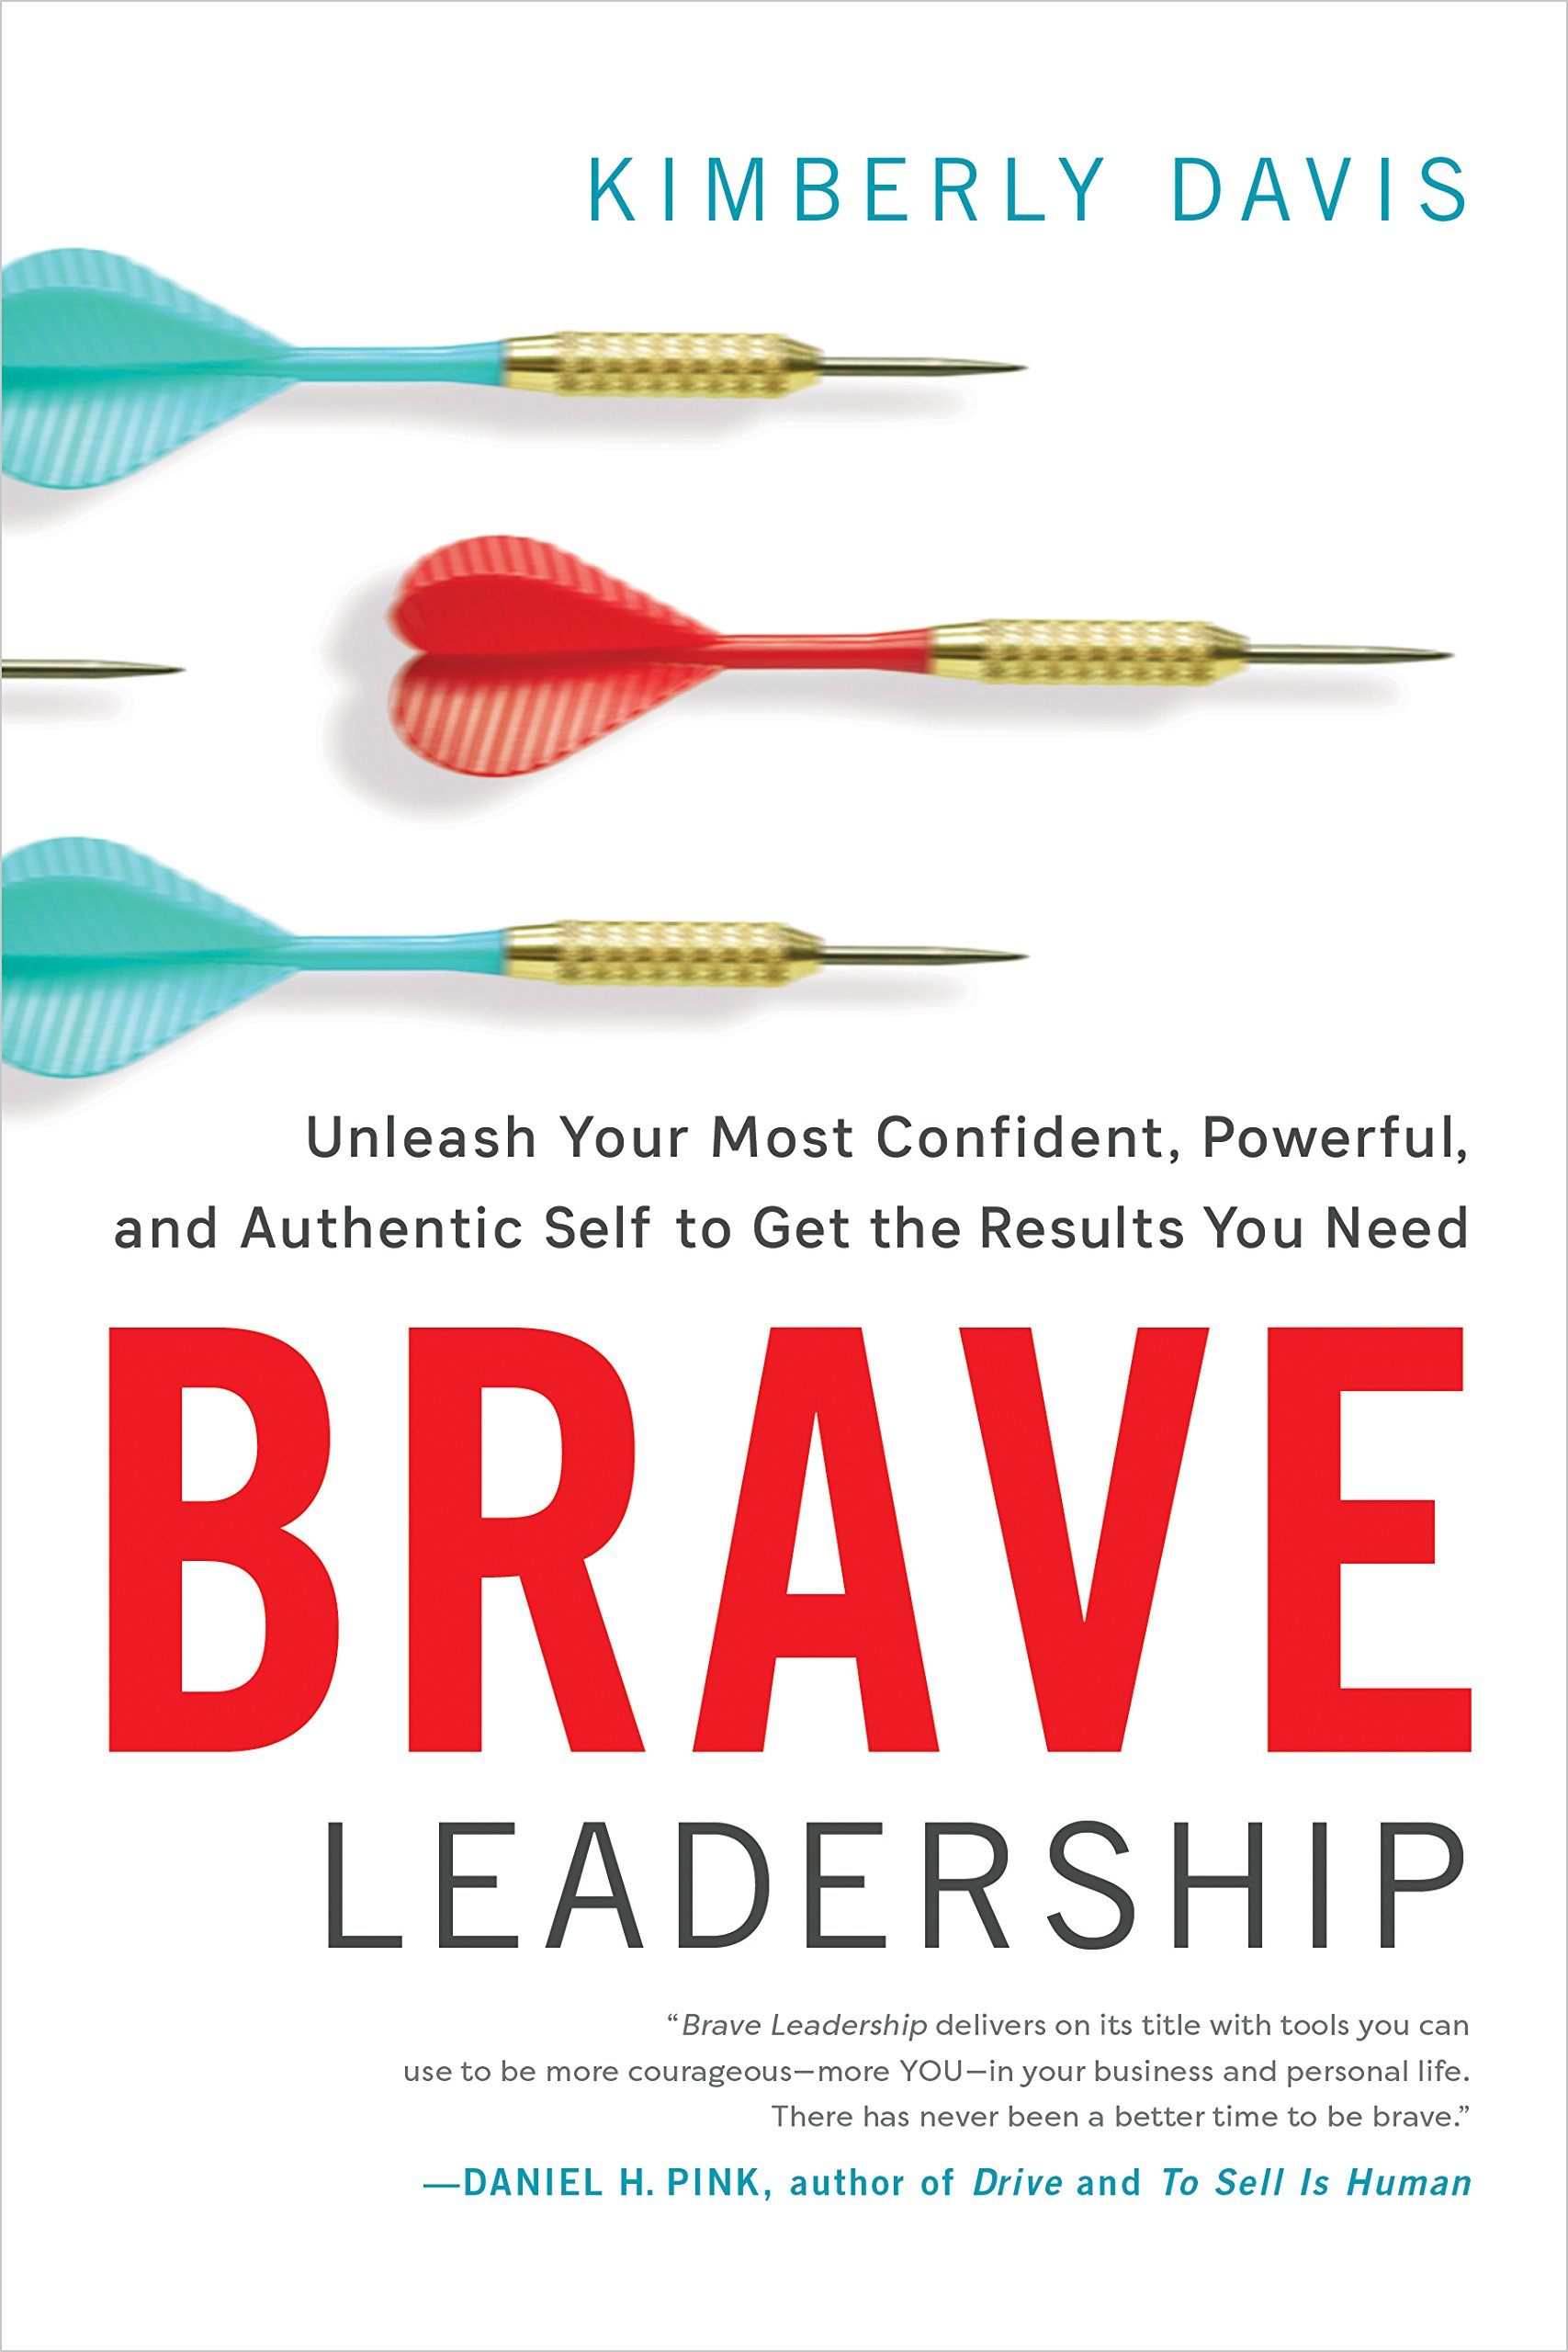 Brave Leadership Unleash Your Most Confident Powerful And Authentic Self To Get The Results You Need Kimberly Davis 9781626344334 Amazon Com Books